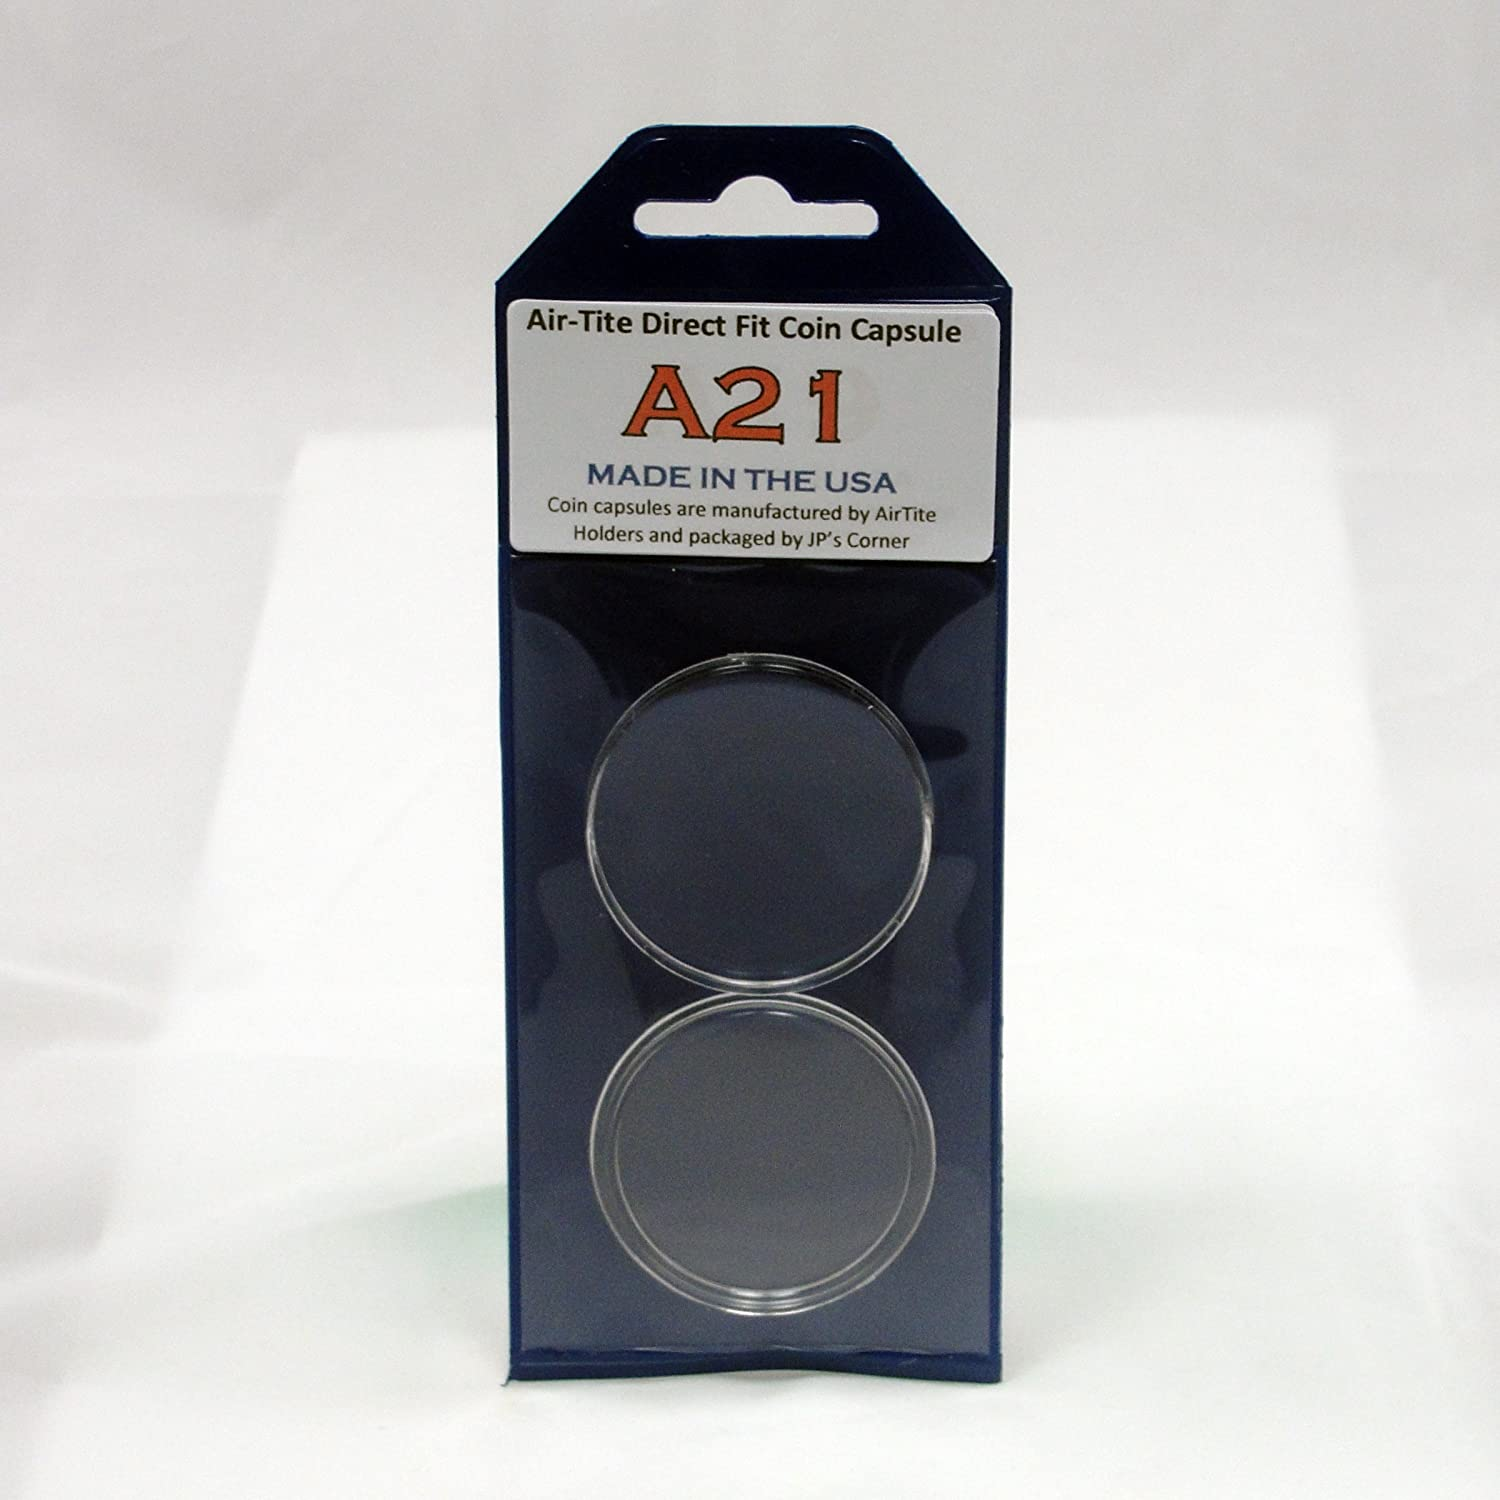 (5) Air-Tite Direct Fit Coin Capsule A21 for U.S. Nickels in JP's Retail Packaging